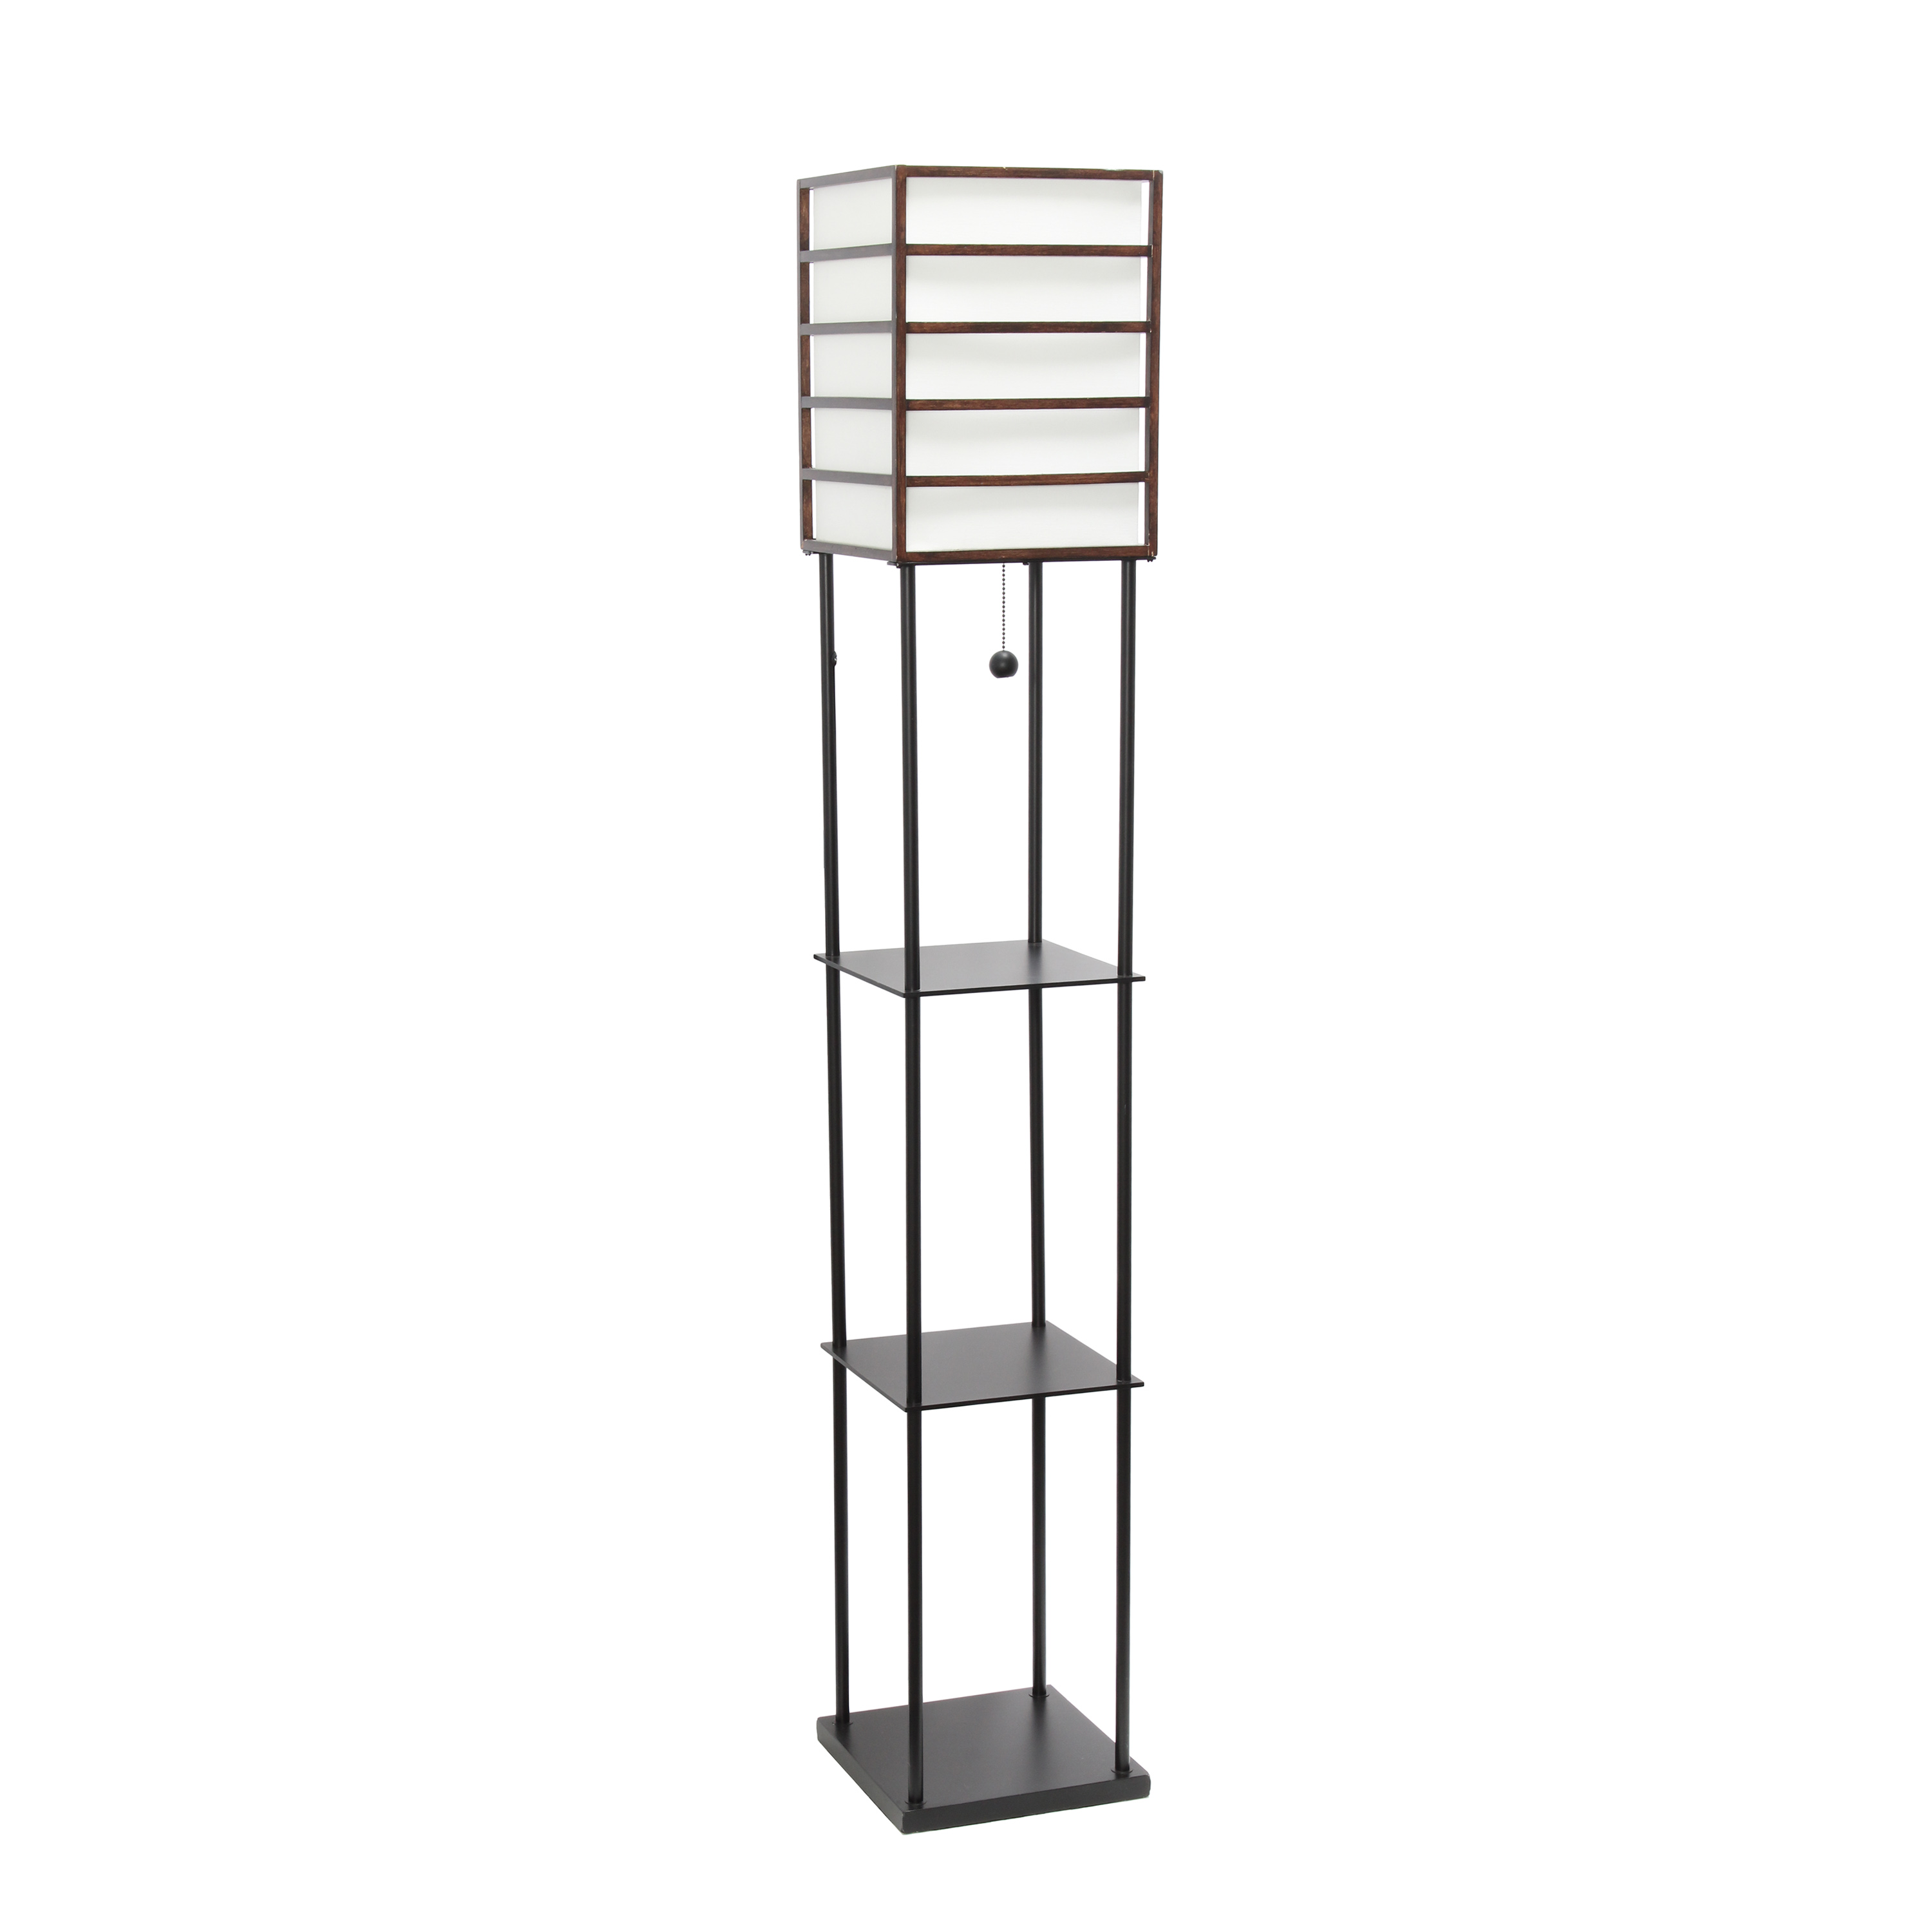 Lalia Home 1 Light Metal Etagere Floor Lamp with Storage Shelves and Linen Shade, Dark Wood